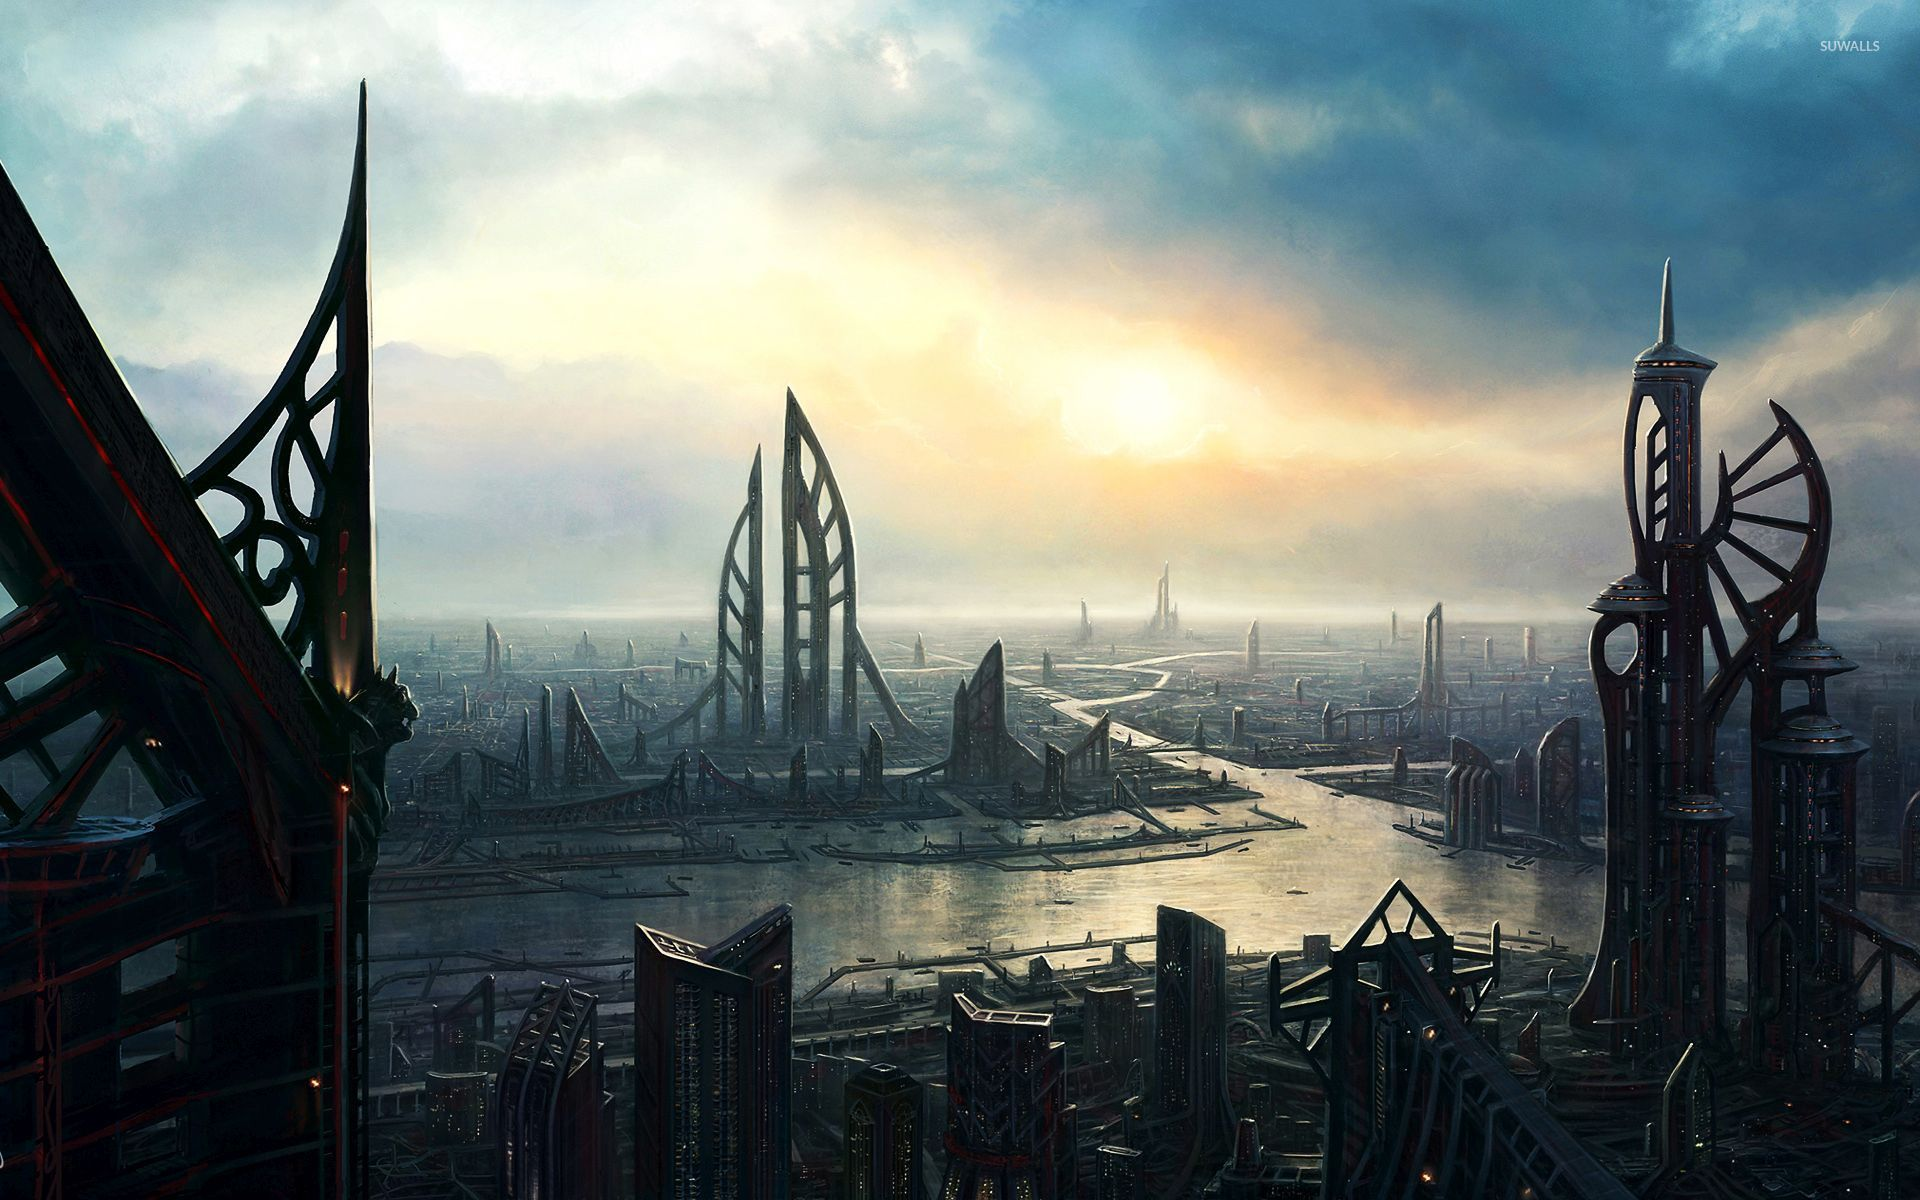 light-in-the-sci-fi-city-54213-1920x1200